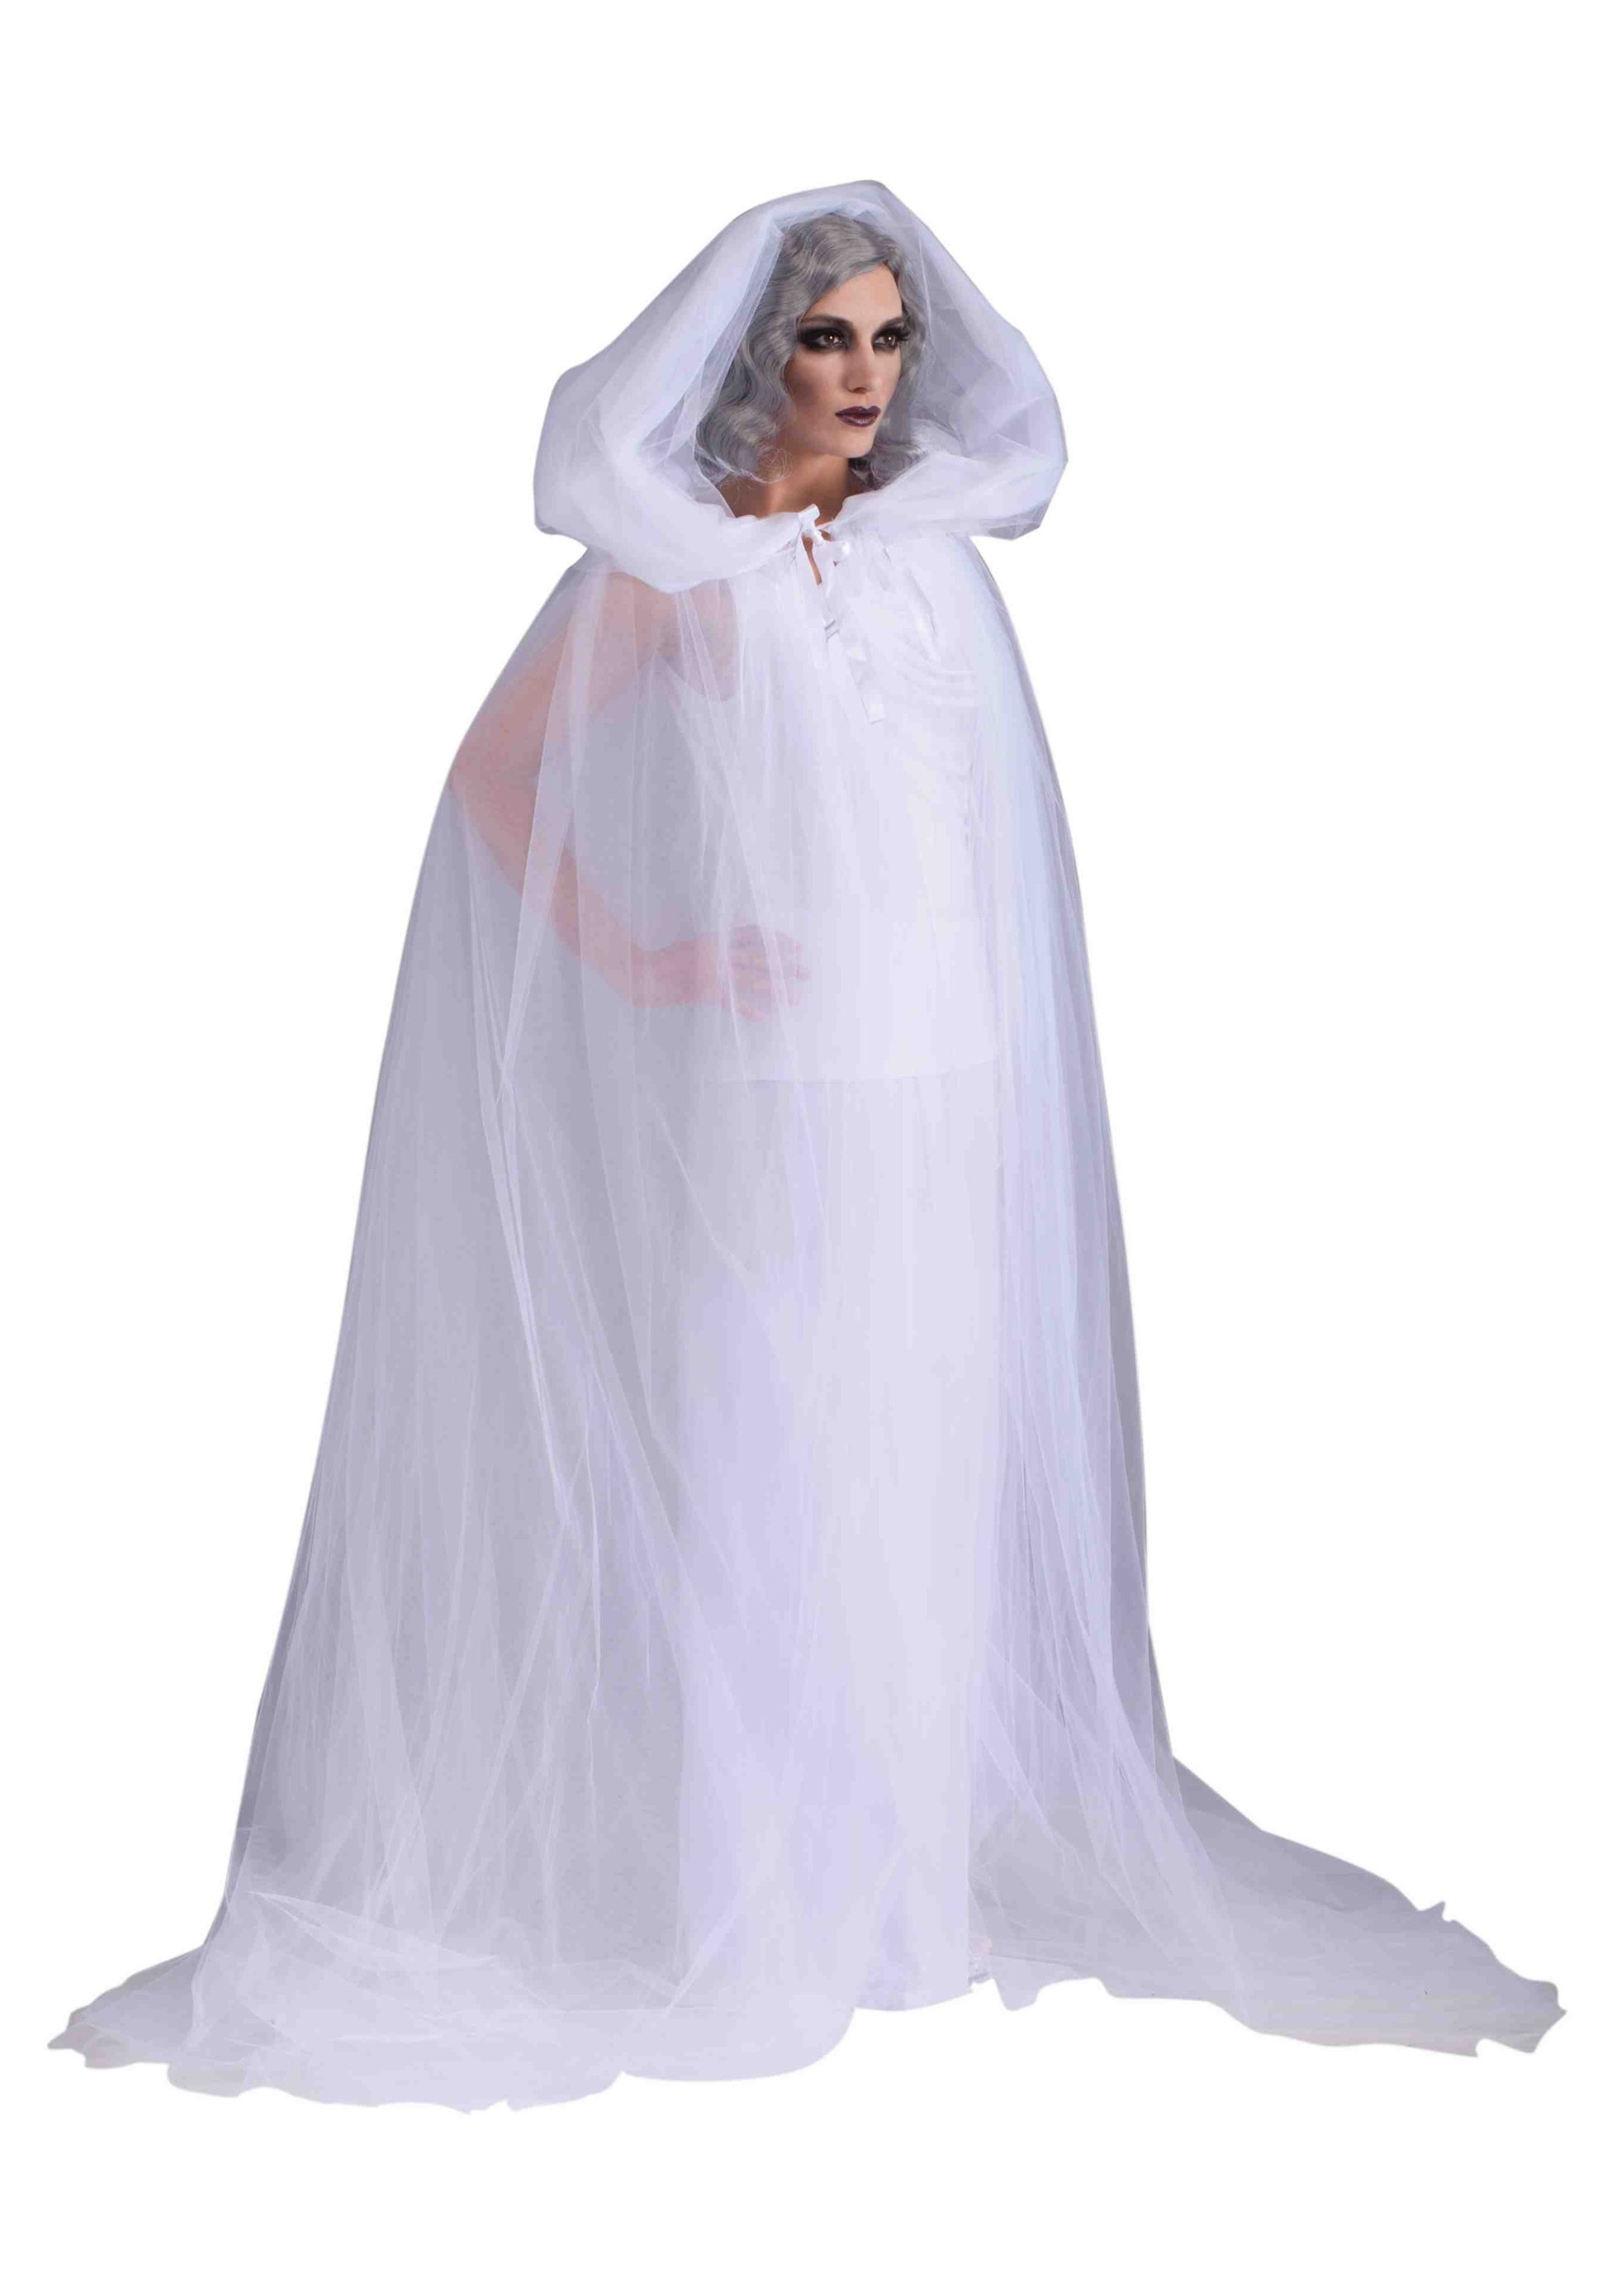 The Haunted Ghost Costume  sc 1 st  Halloween Costumes & The Haunted Ghost Costume - Halloween Costumes